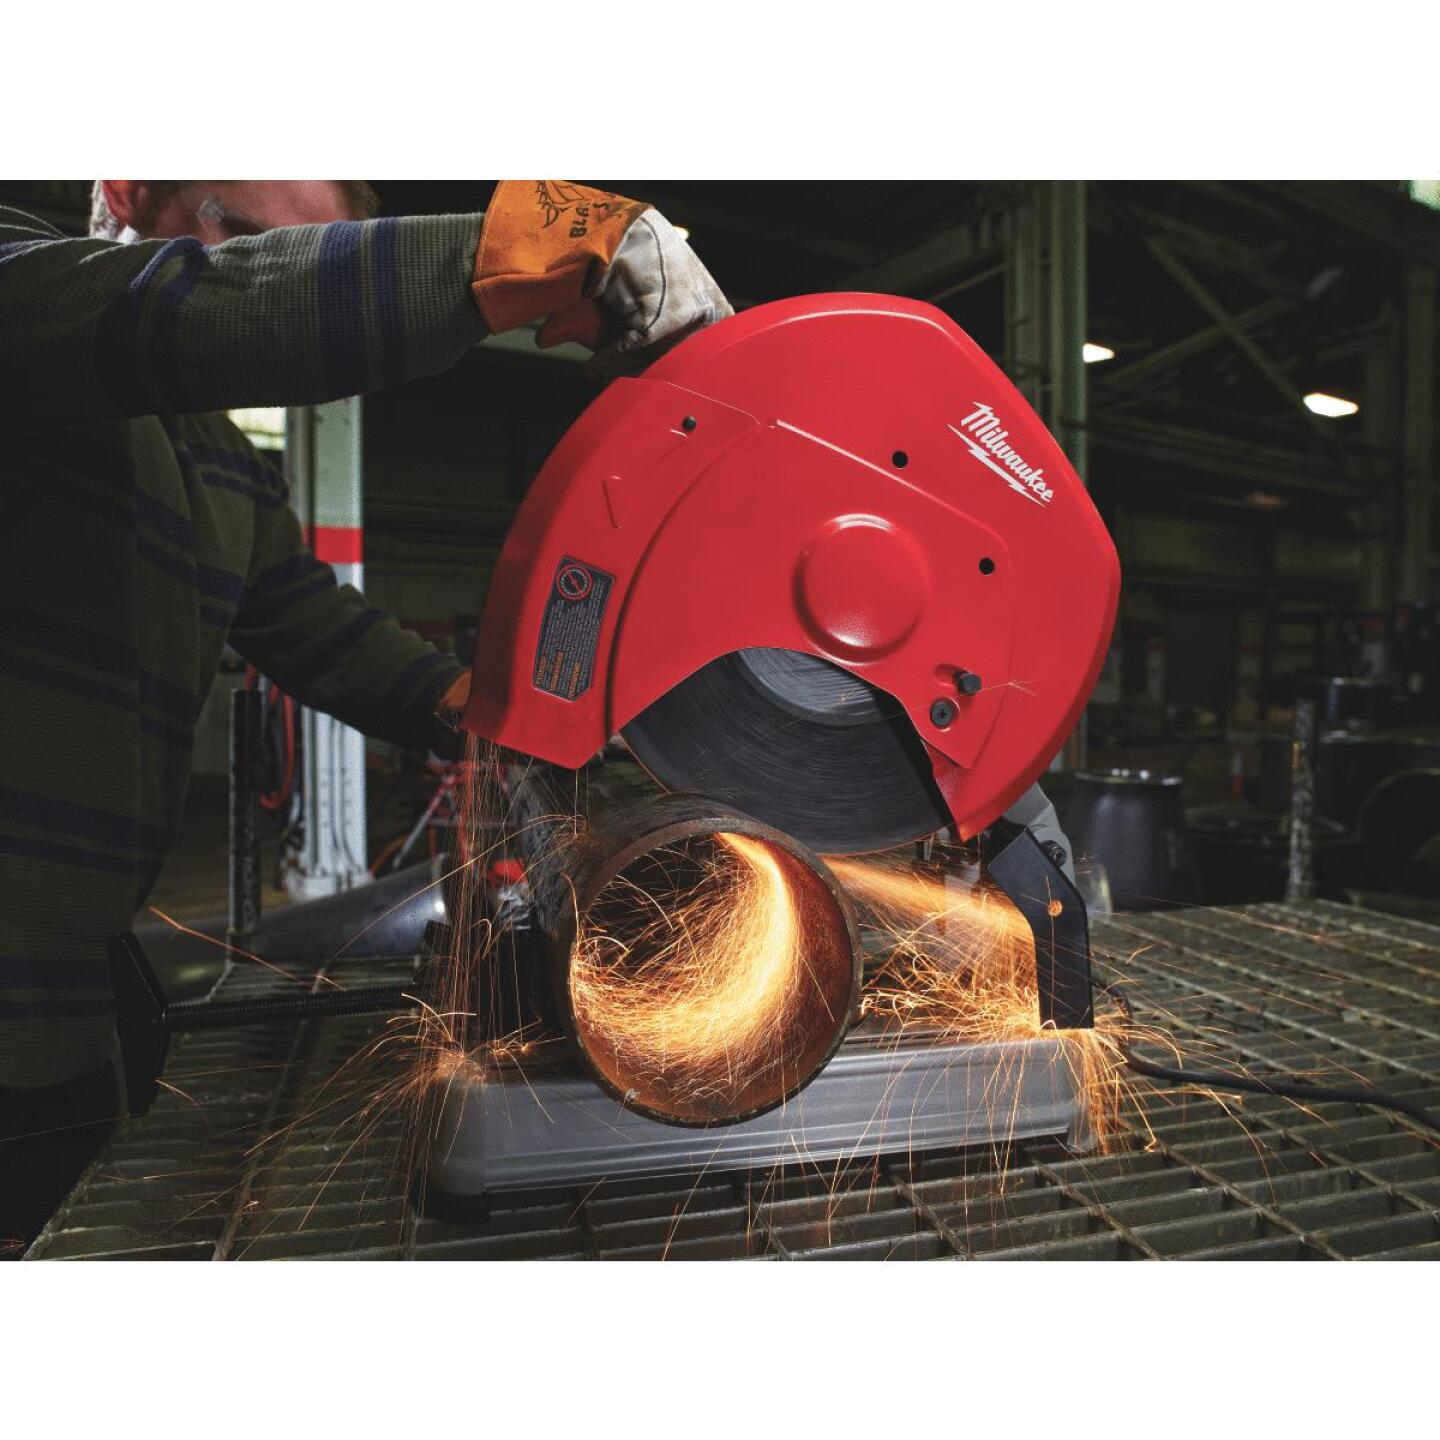 Milwaukee 14 In. 15-Amp Chop Saw Image 2